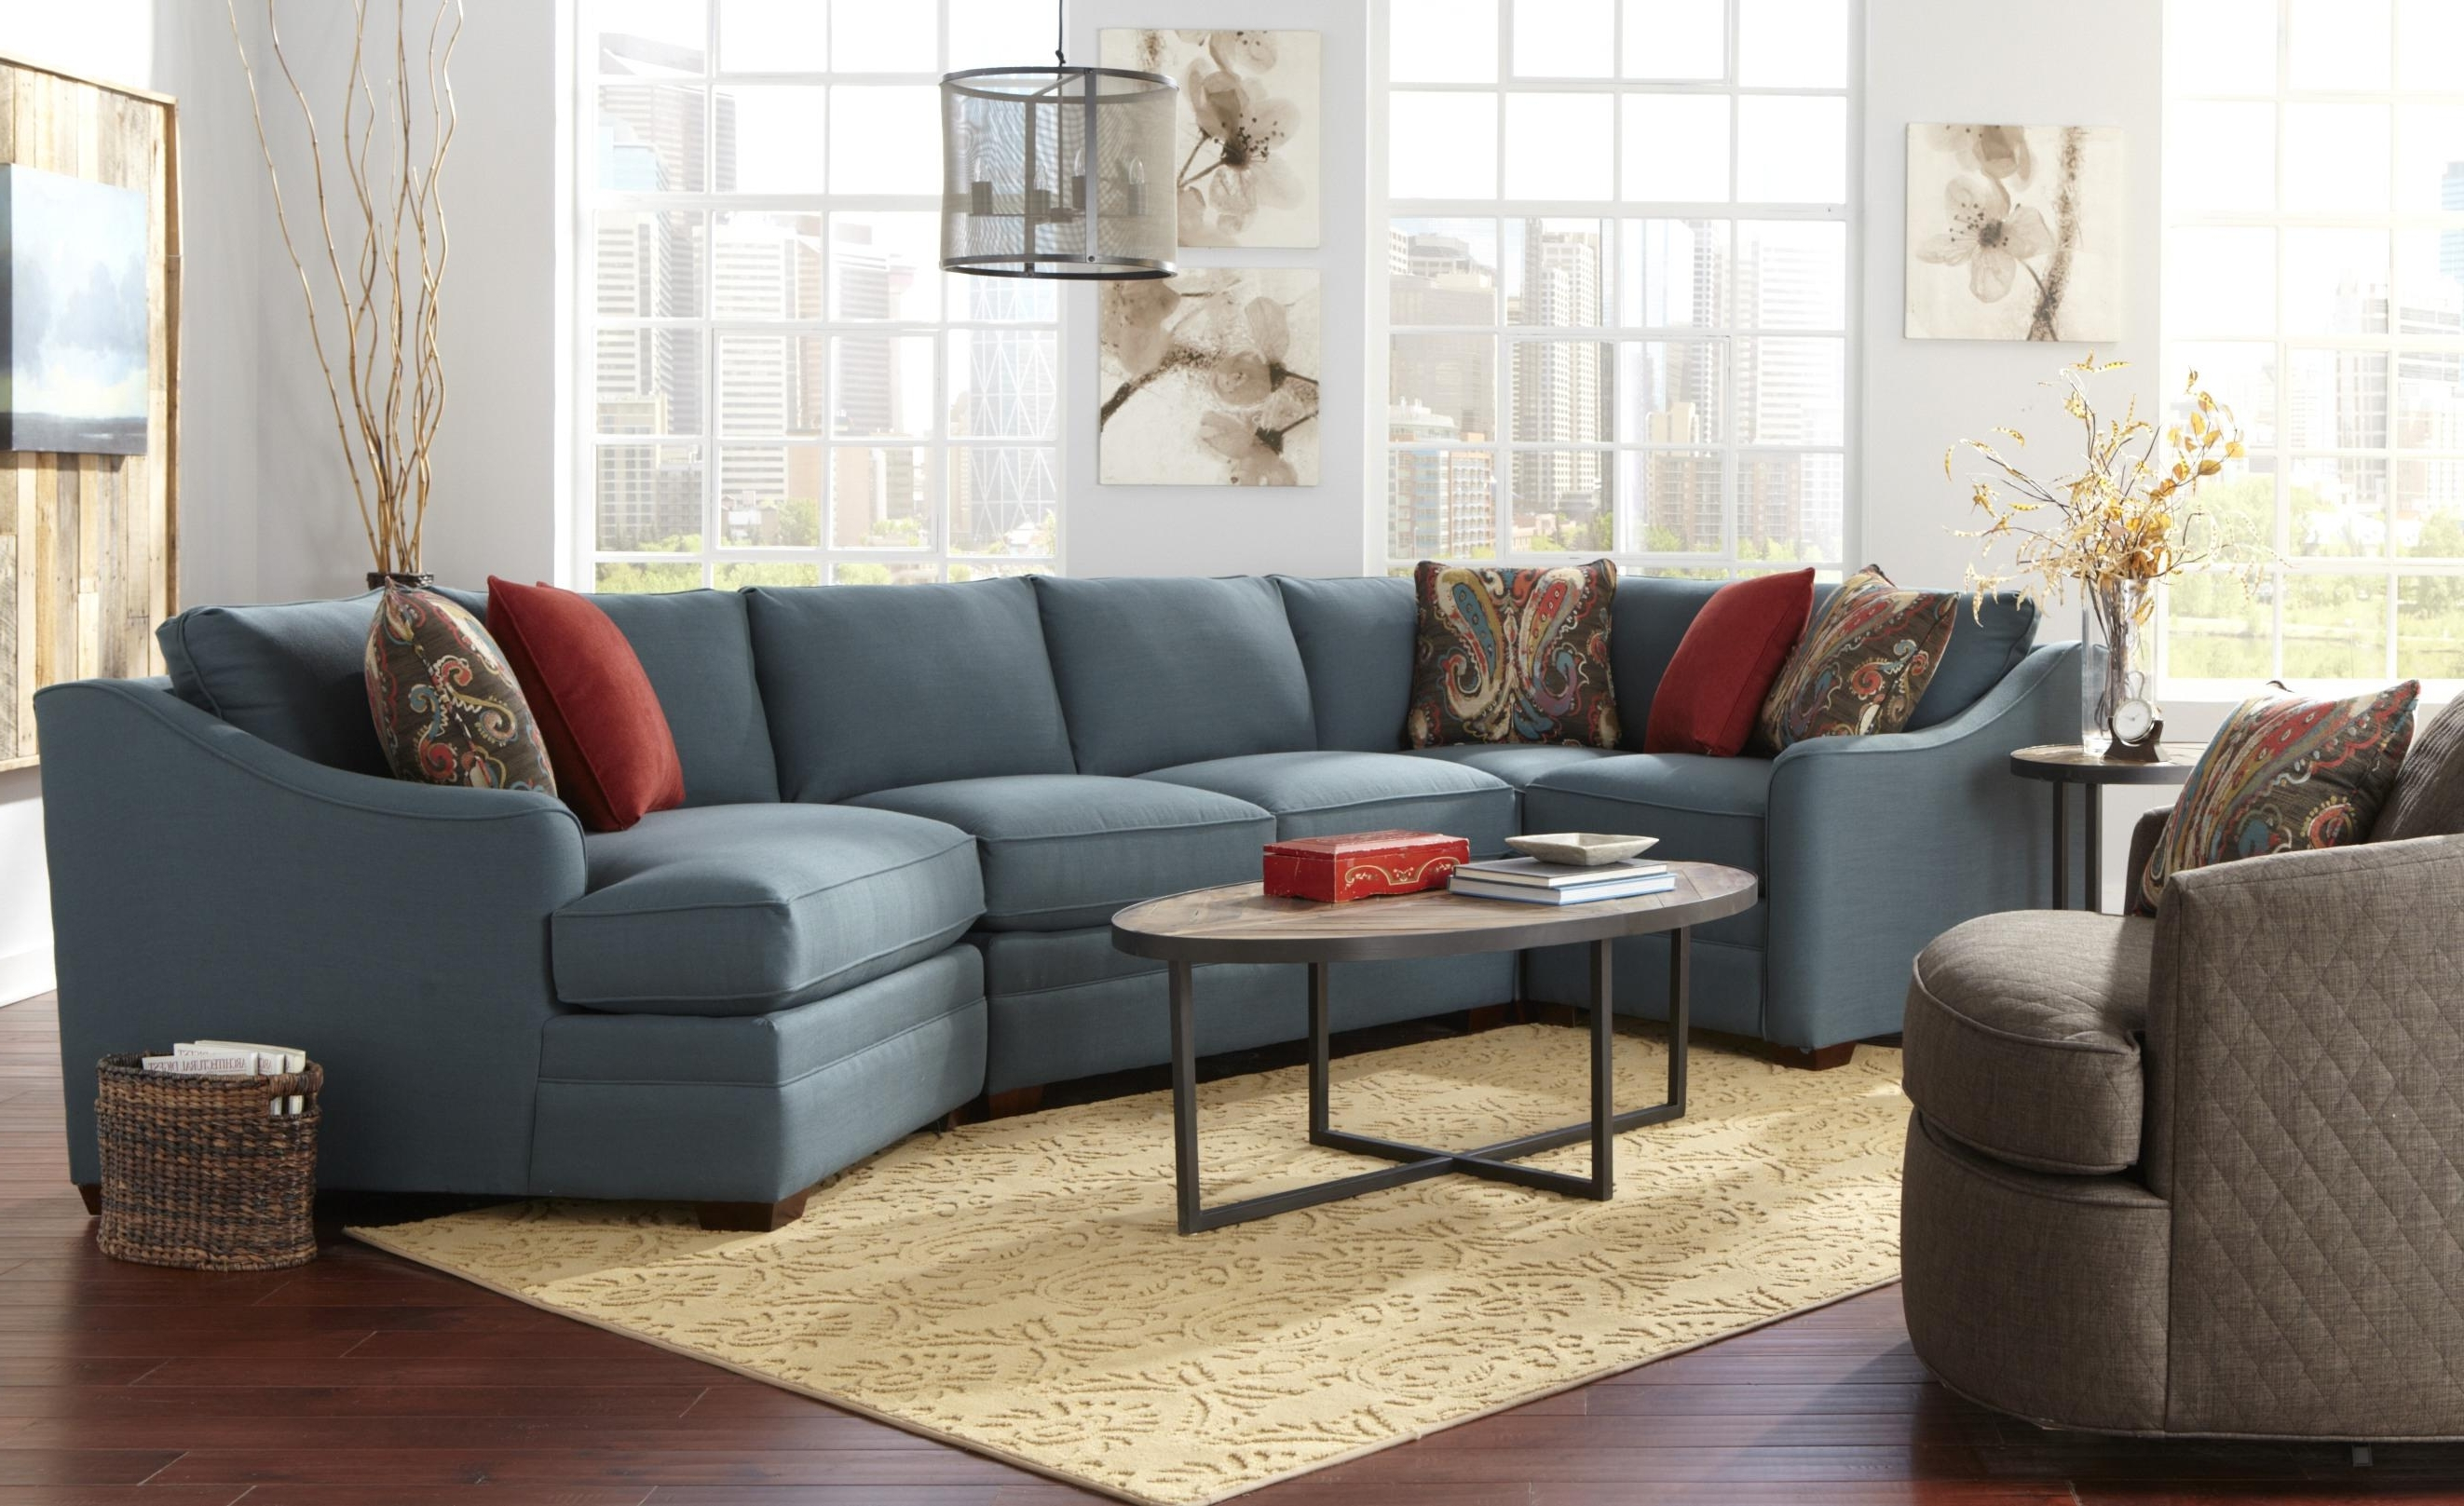 Four Piece <B>Customizable</b> Sectional Sofa With Raf Cuddler With Regard To Fashionable Sectional Sofas With Cuddler (View 6 of 20)